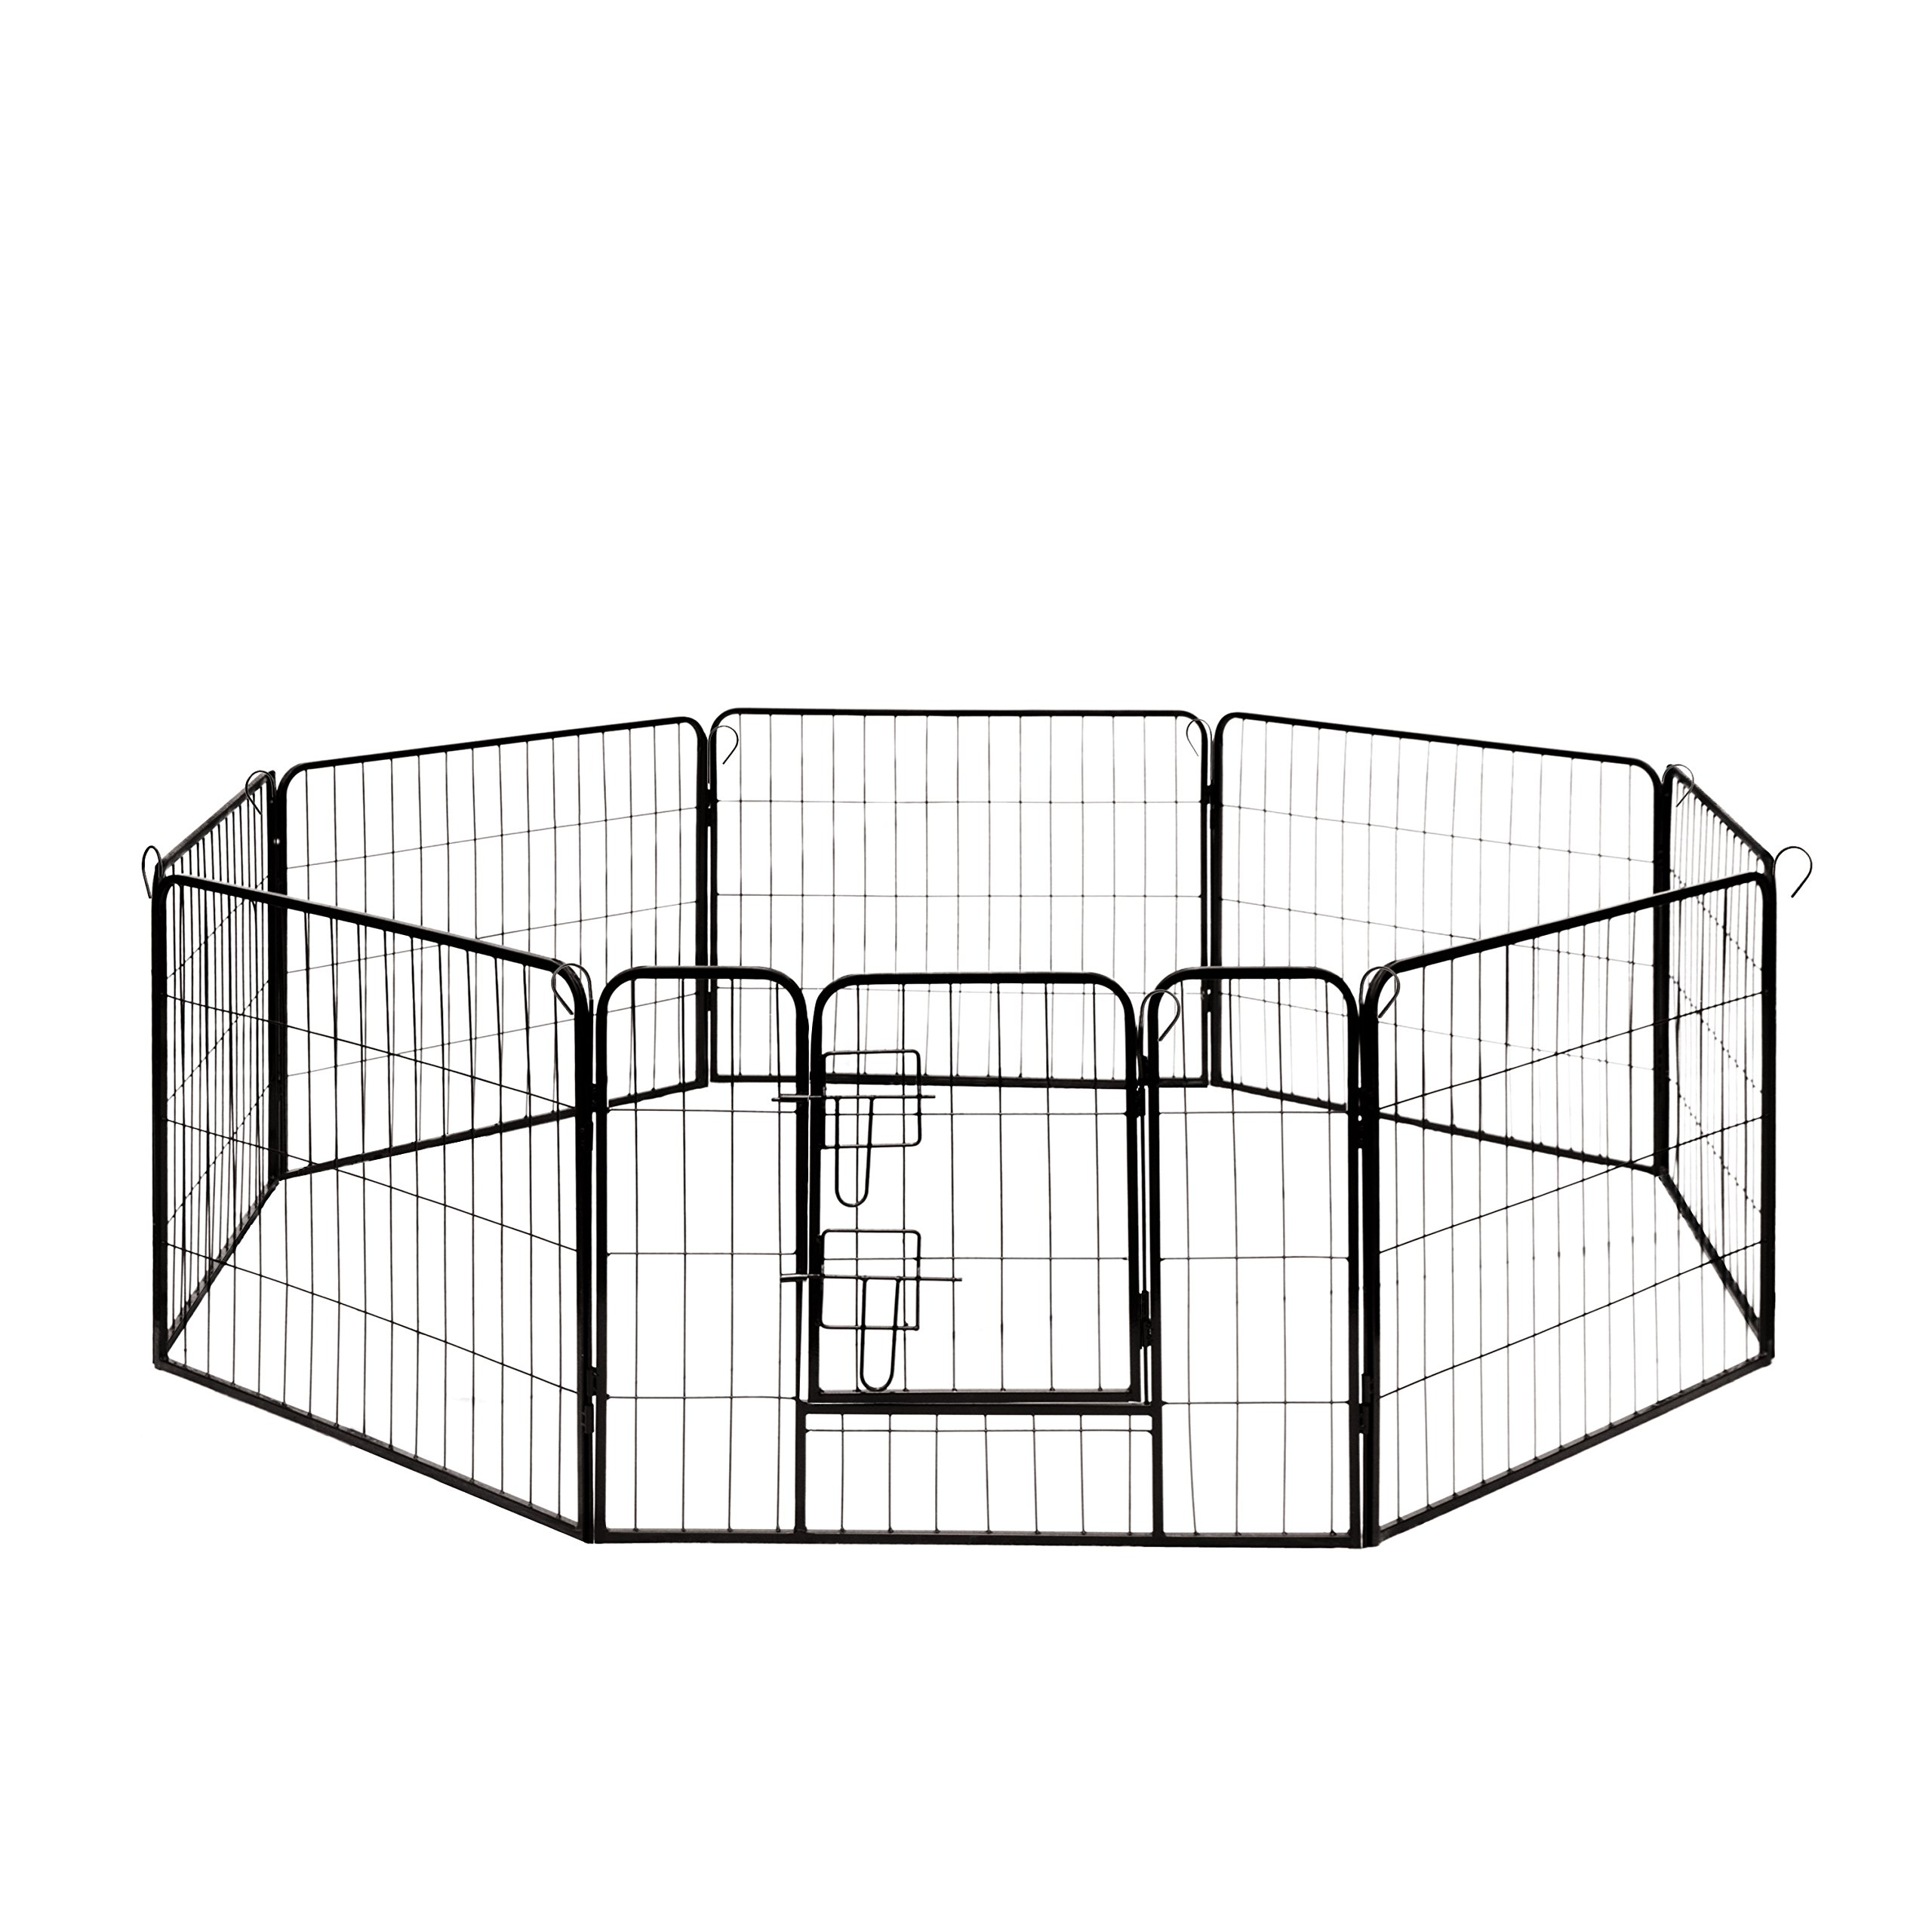 ALEKO DK24X32 Heavy Duty Pet Playpen Dog Kennel Pen Exercise Cage Fence 8 Panel 24 x 32 Inches Black by ALEKO